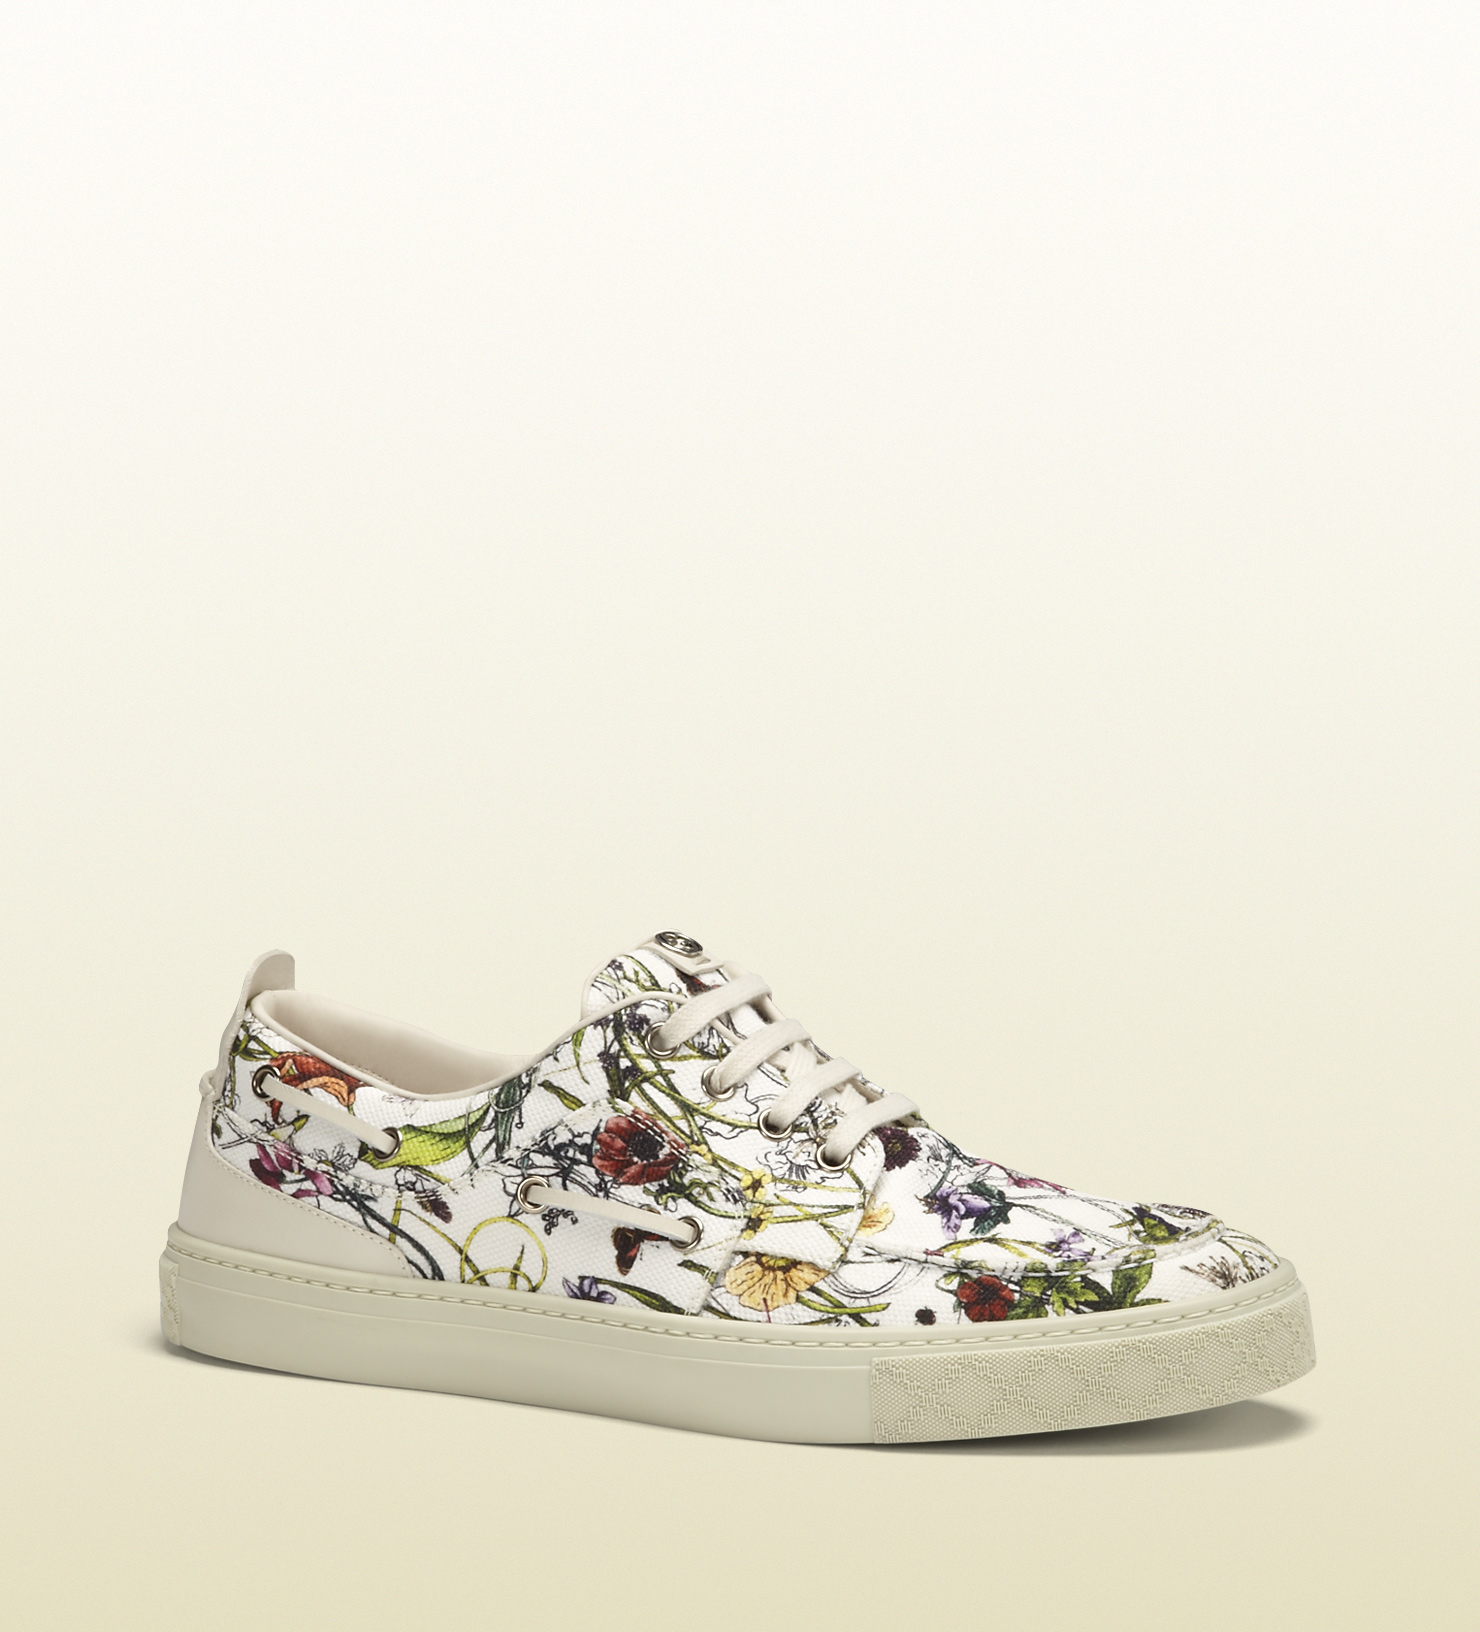 558d3430f61 Lyst - Gucci Infinity Canvas Flora Sneaker in White for Men